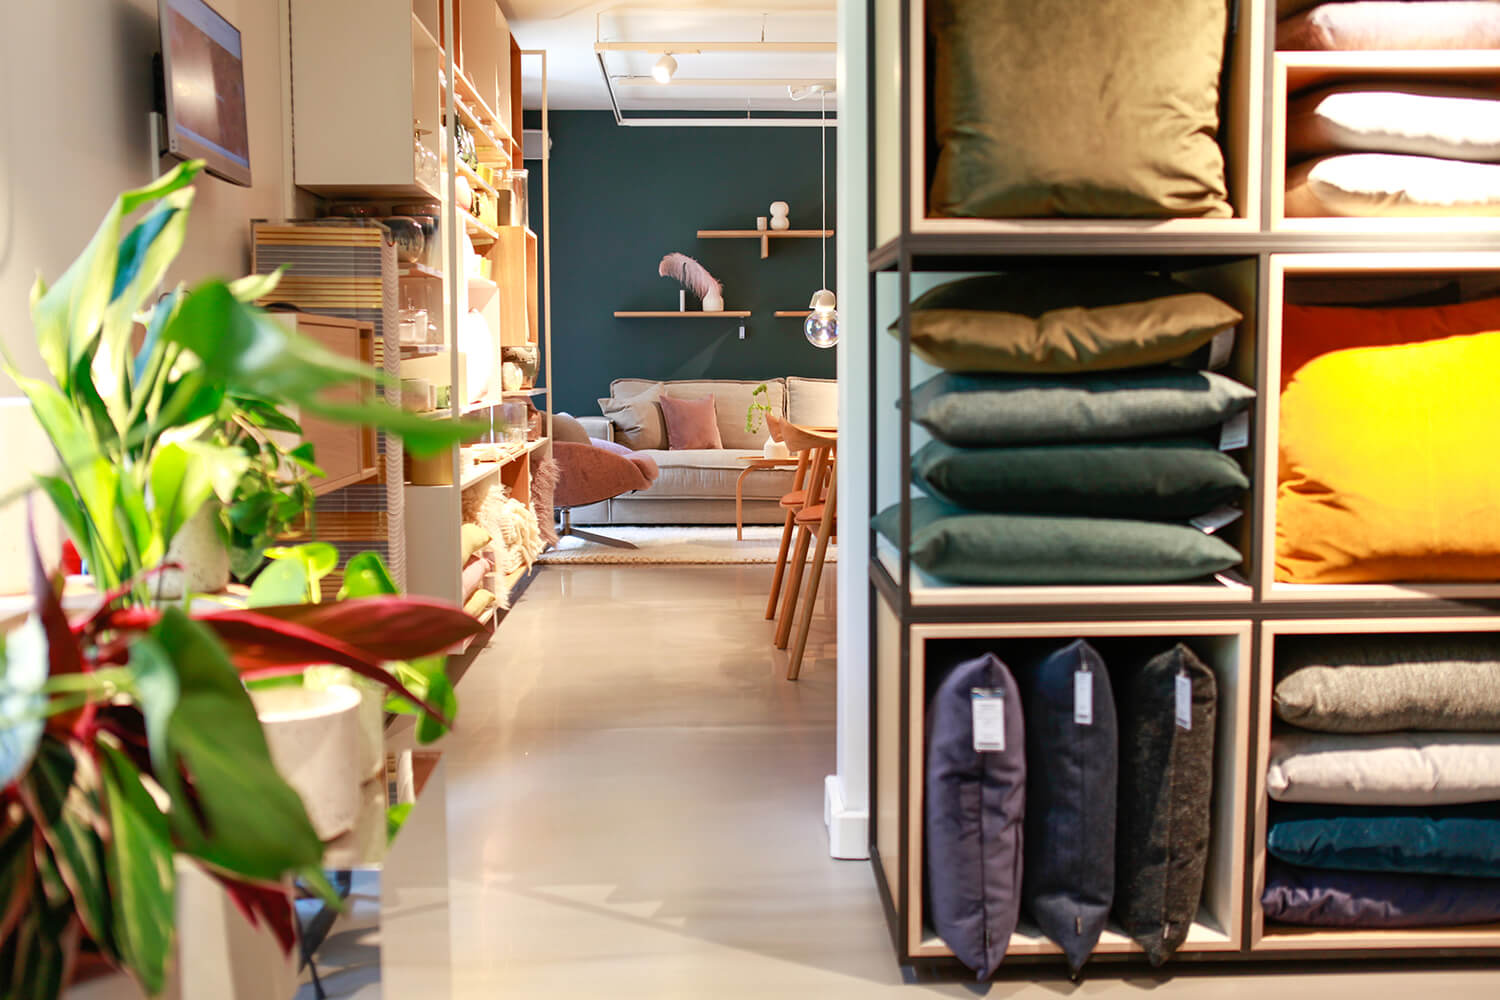 Boutique déco scandinave à Paris